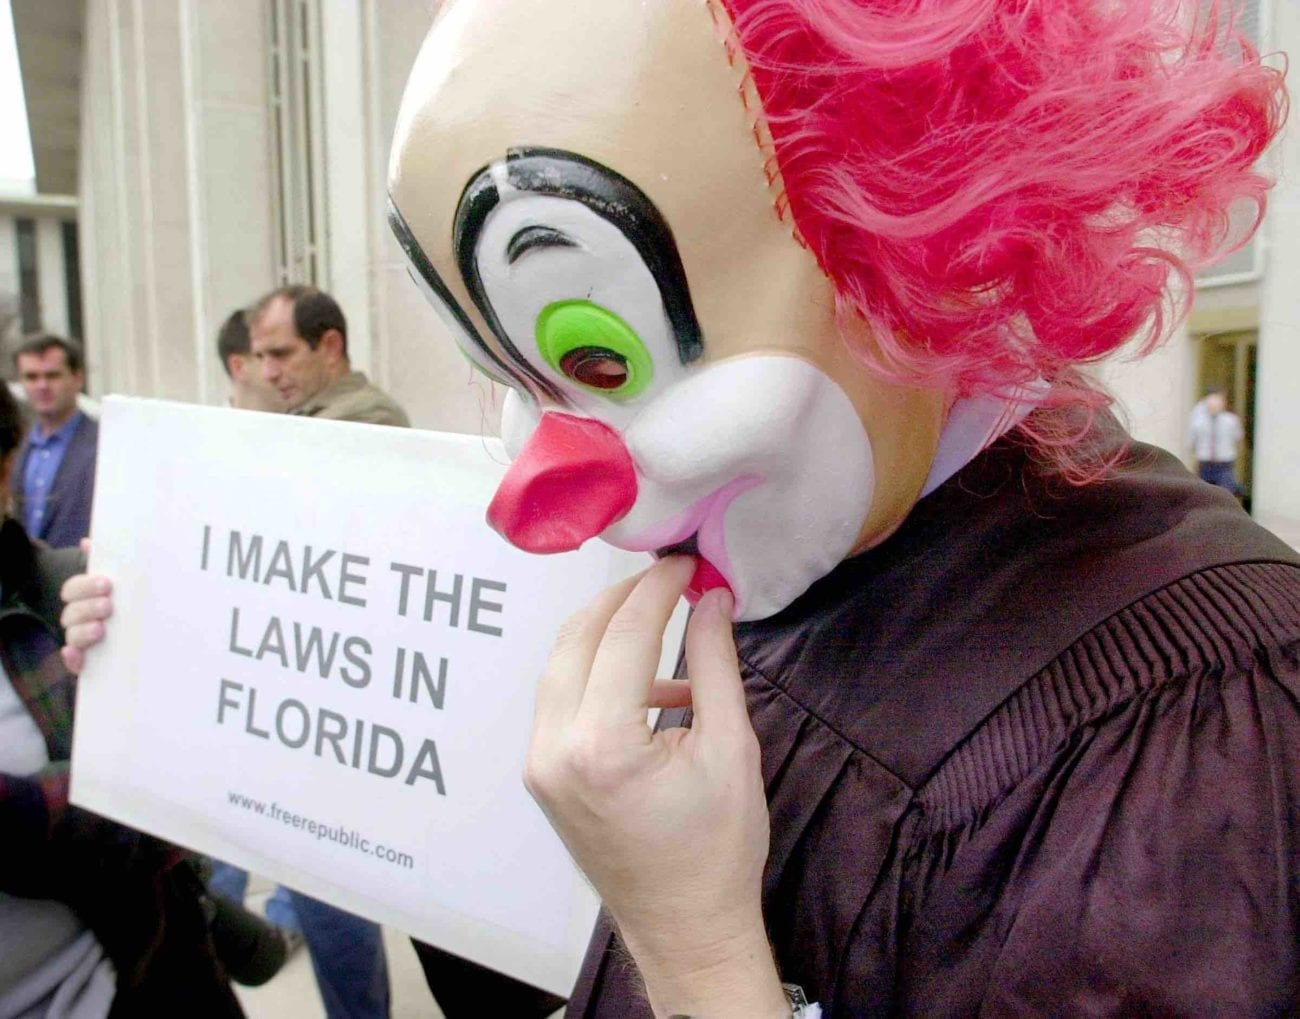 It's hard not to fall in love with the ridiculousness that is Florida Man. So we've collected some of our favorite Florida Man and Florida Woman memes.